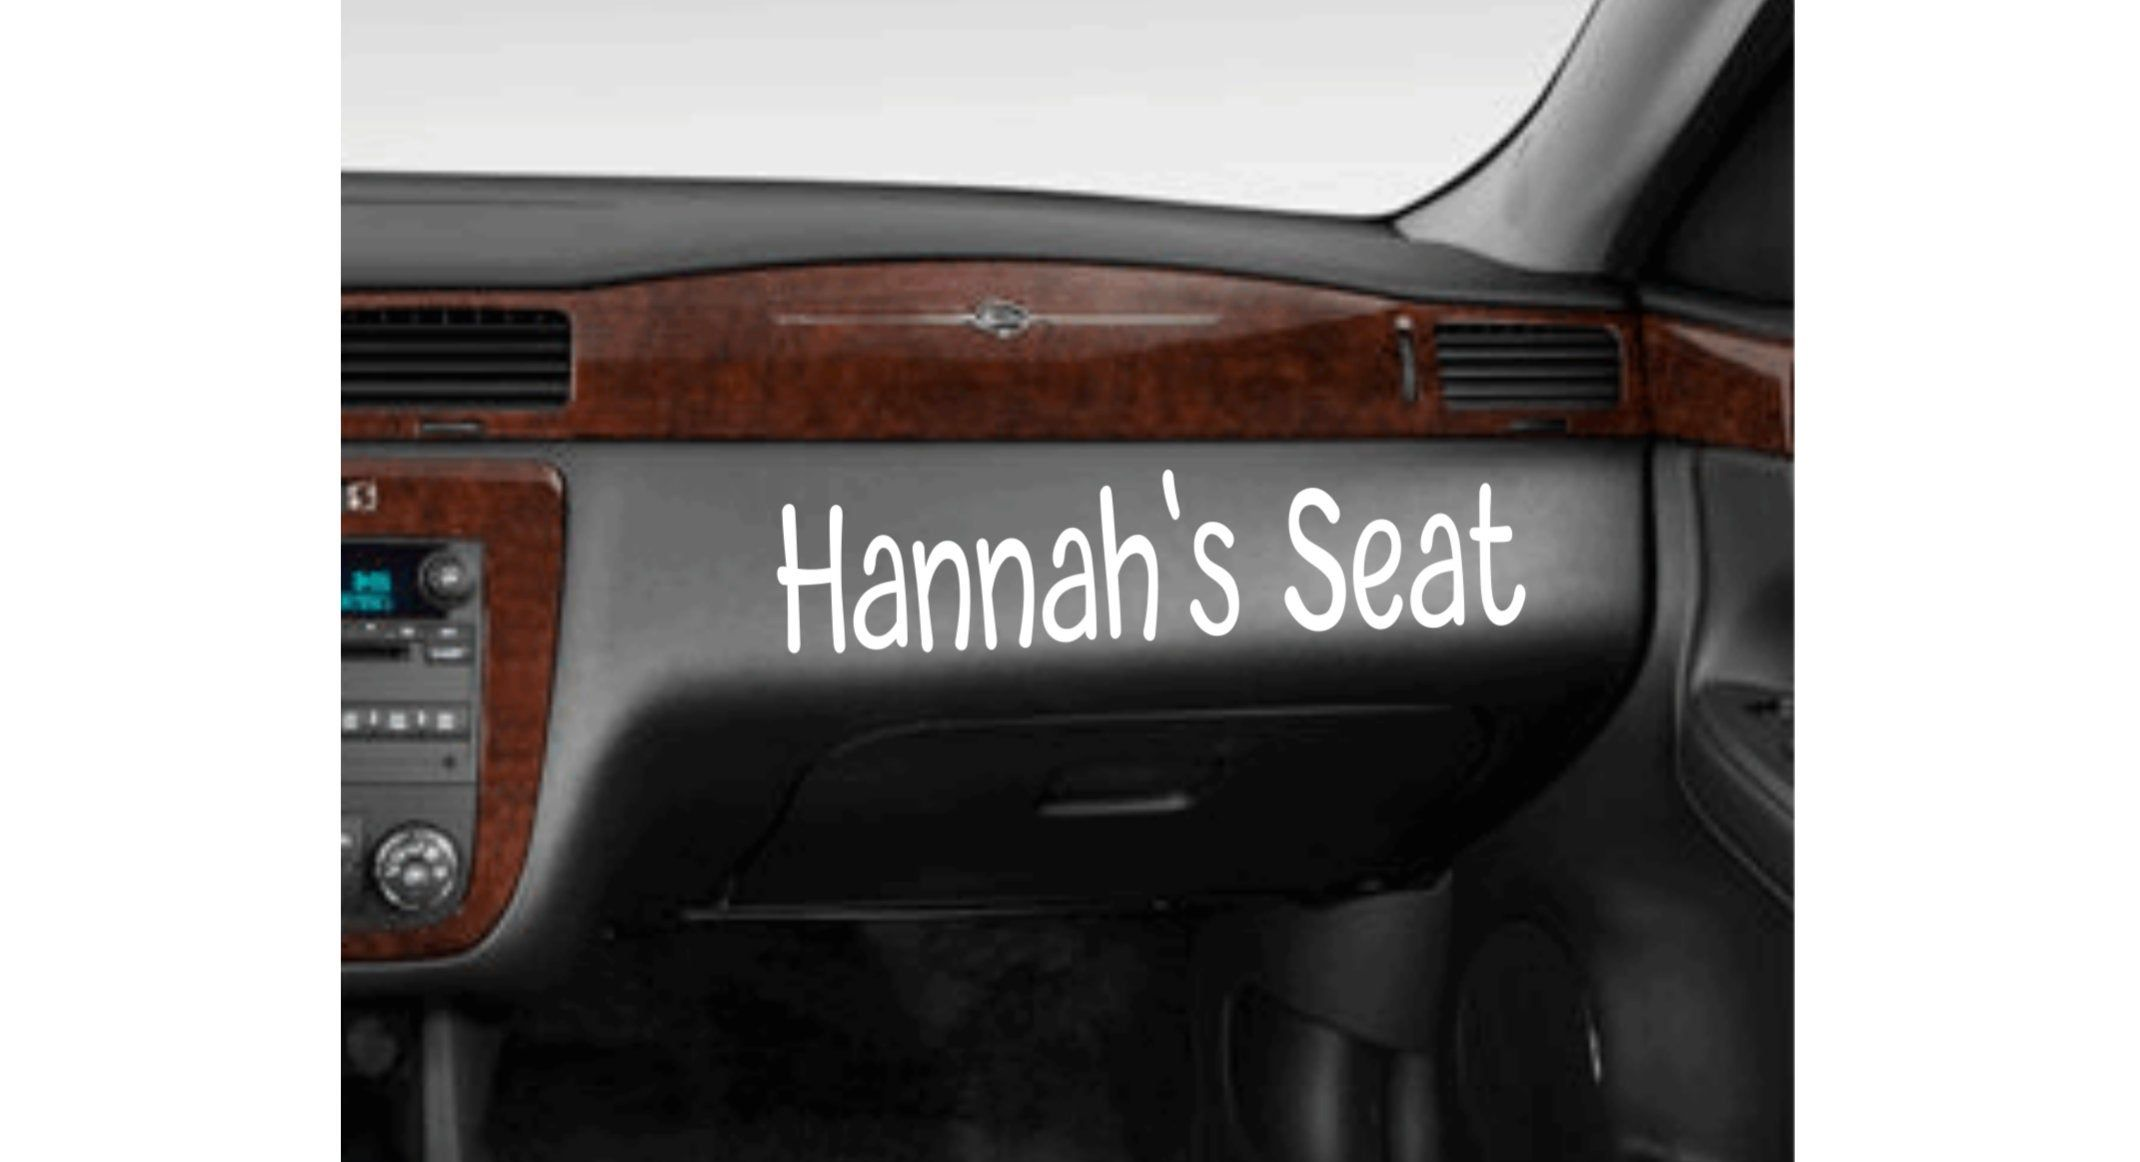 Girlfriends Seat Sticker For Car Car Sticker Name Decal For Car Relationship Sticker Custom Name Vinyl Decal Gift For Car Stickers Car Decals Vinyl Decals [ 1162 x 2140 Pixel ]